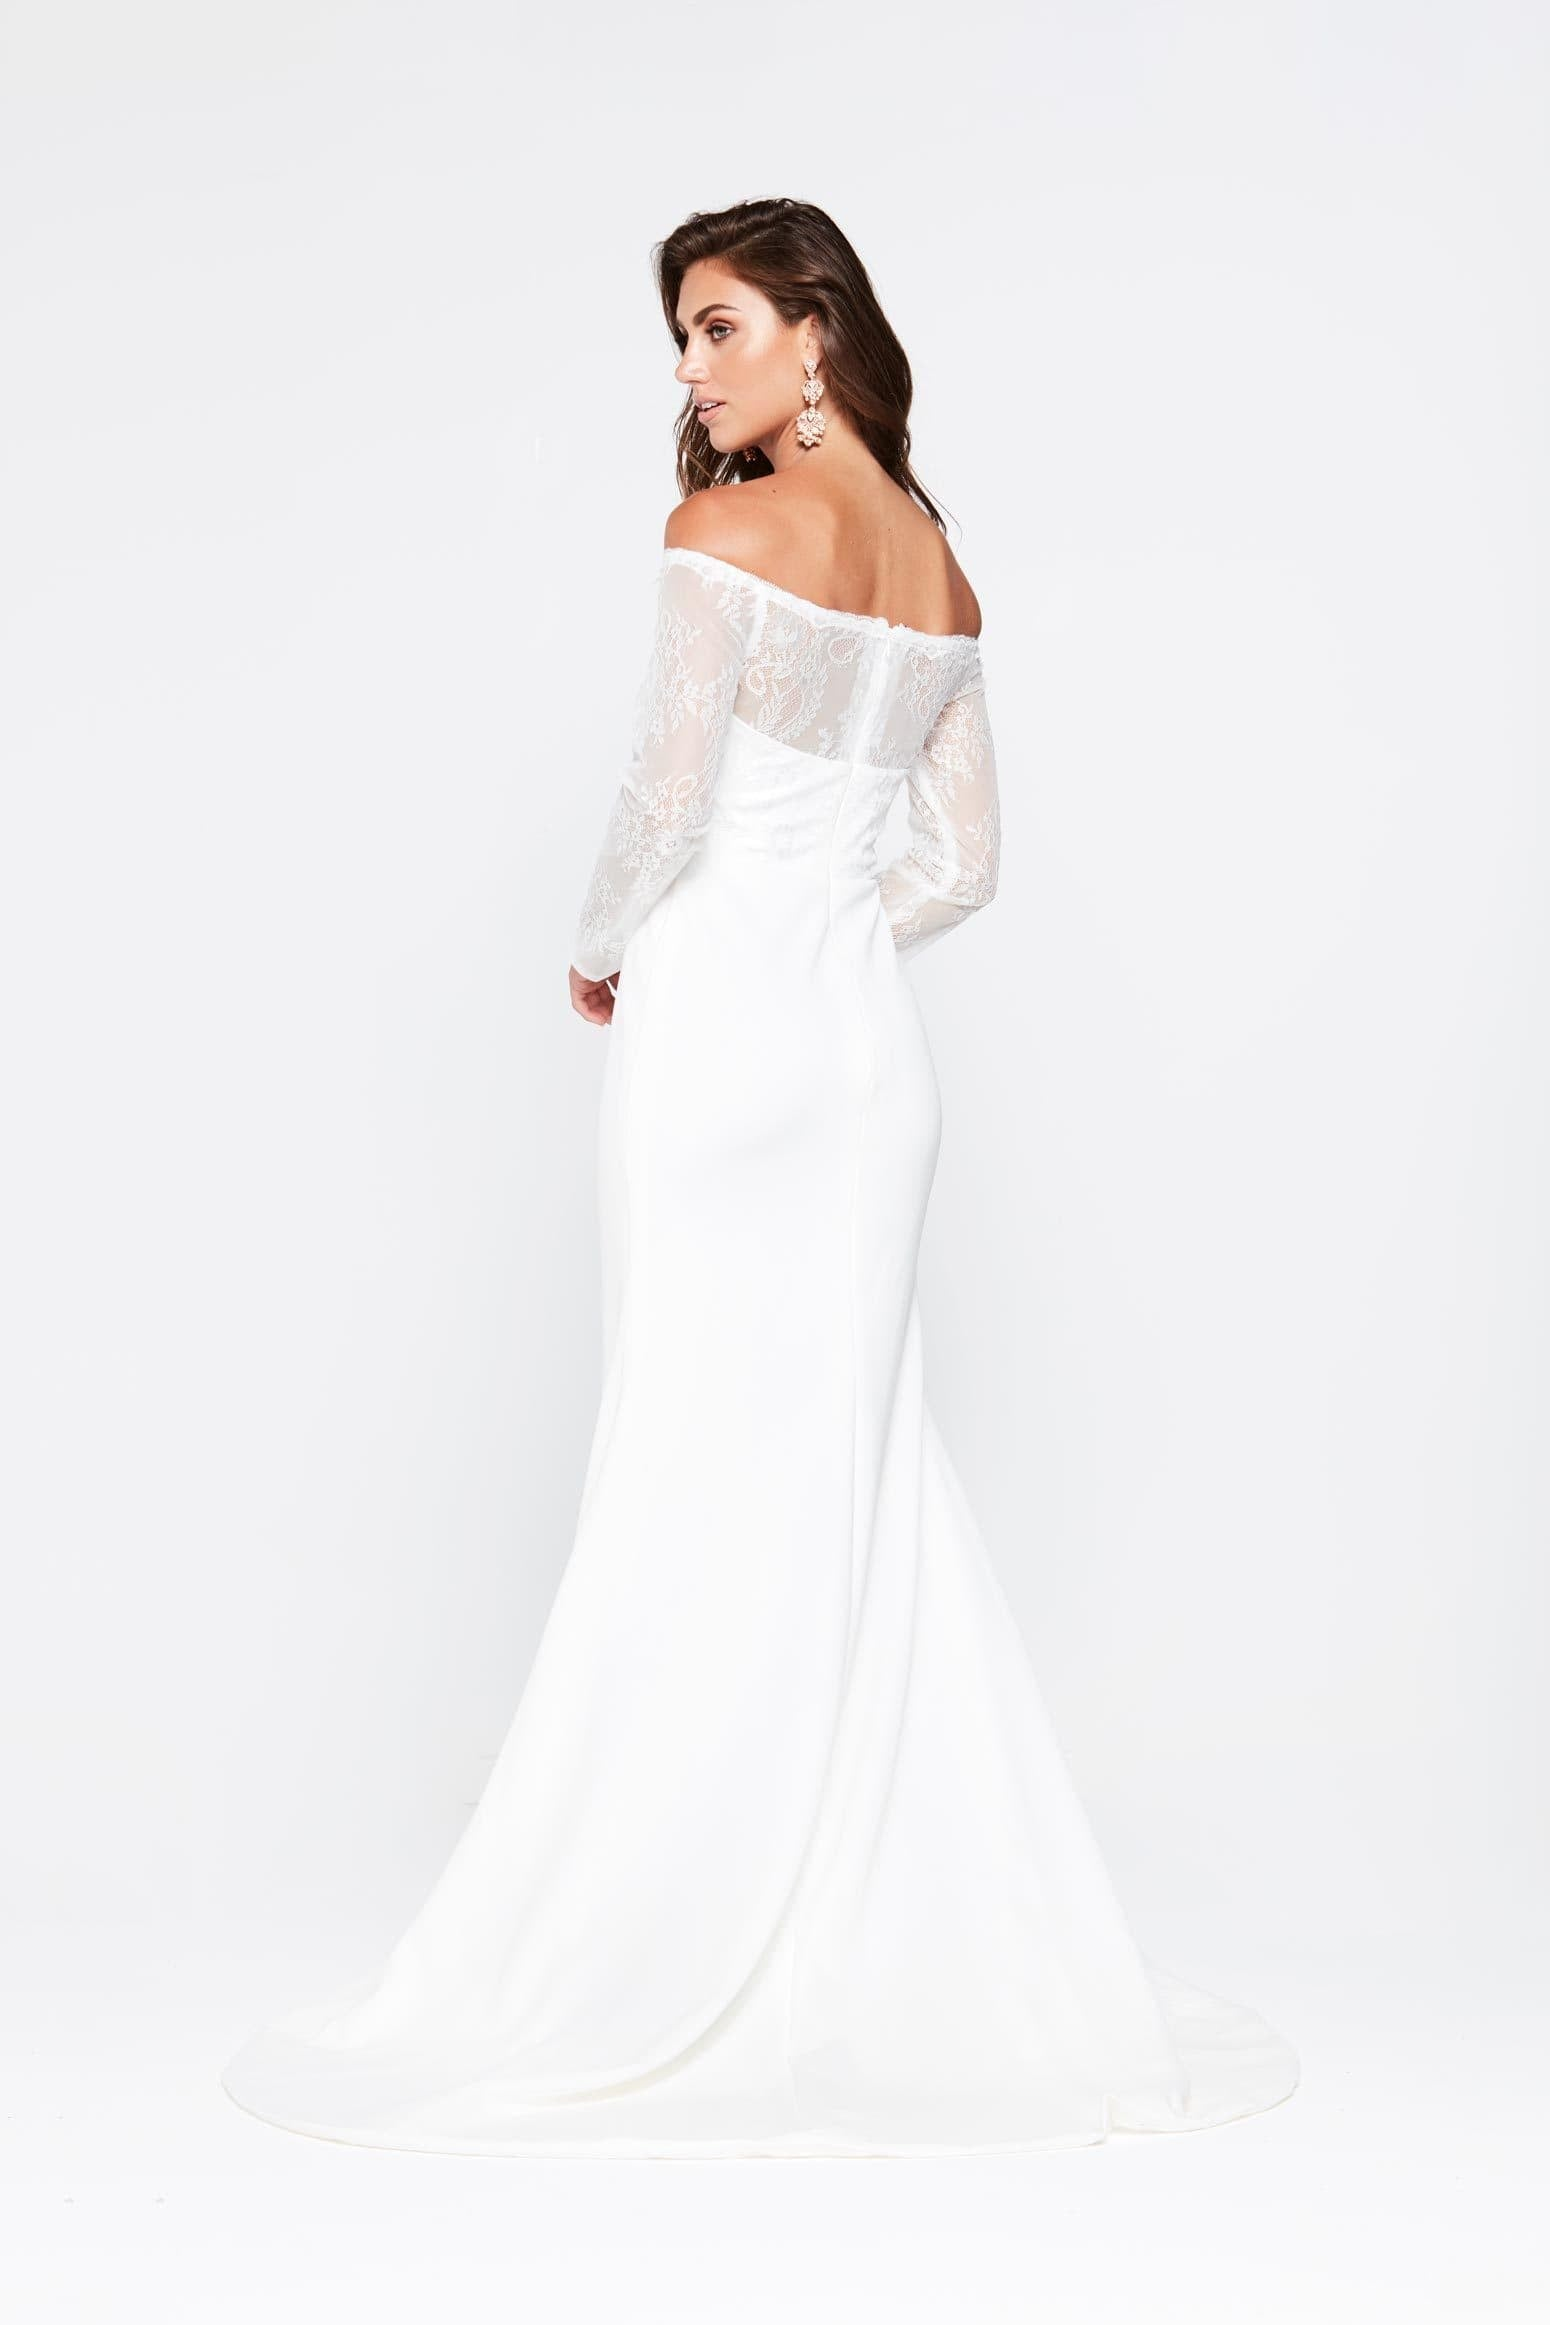 48f8ba257142 ... A N Gina - White Jersey Lace Off Shoulder Gown with Long Sleeves